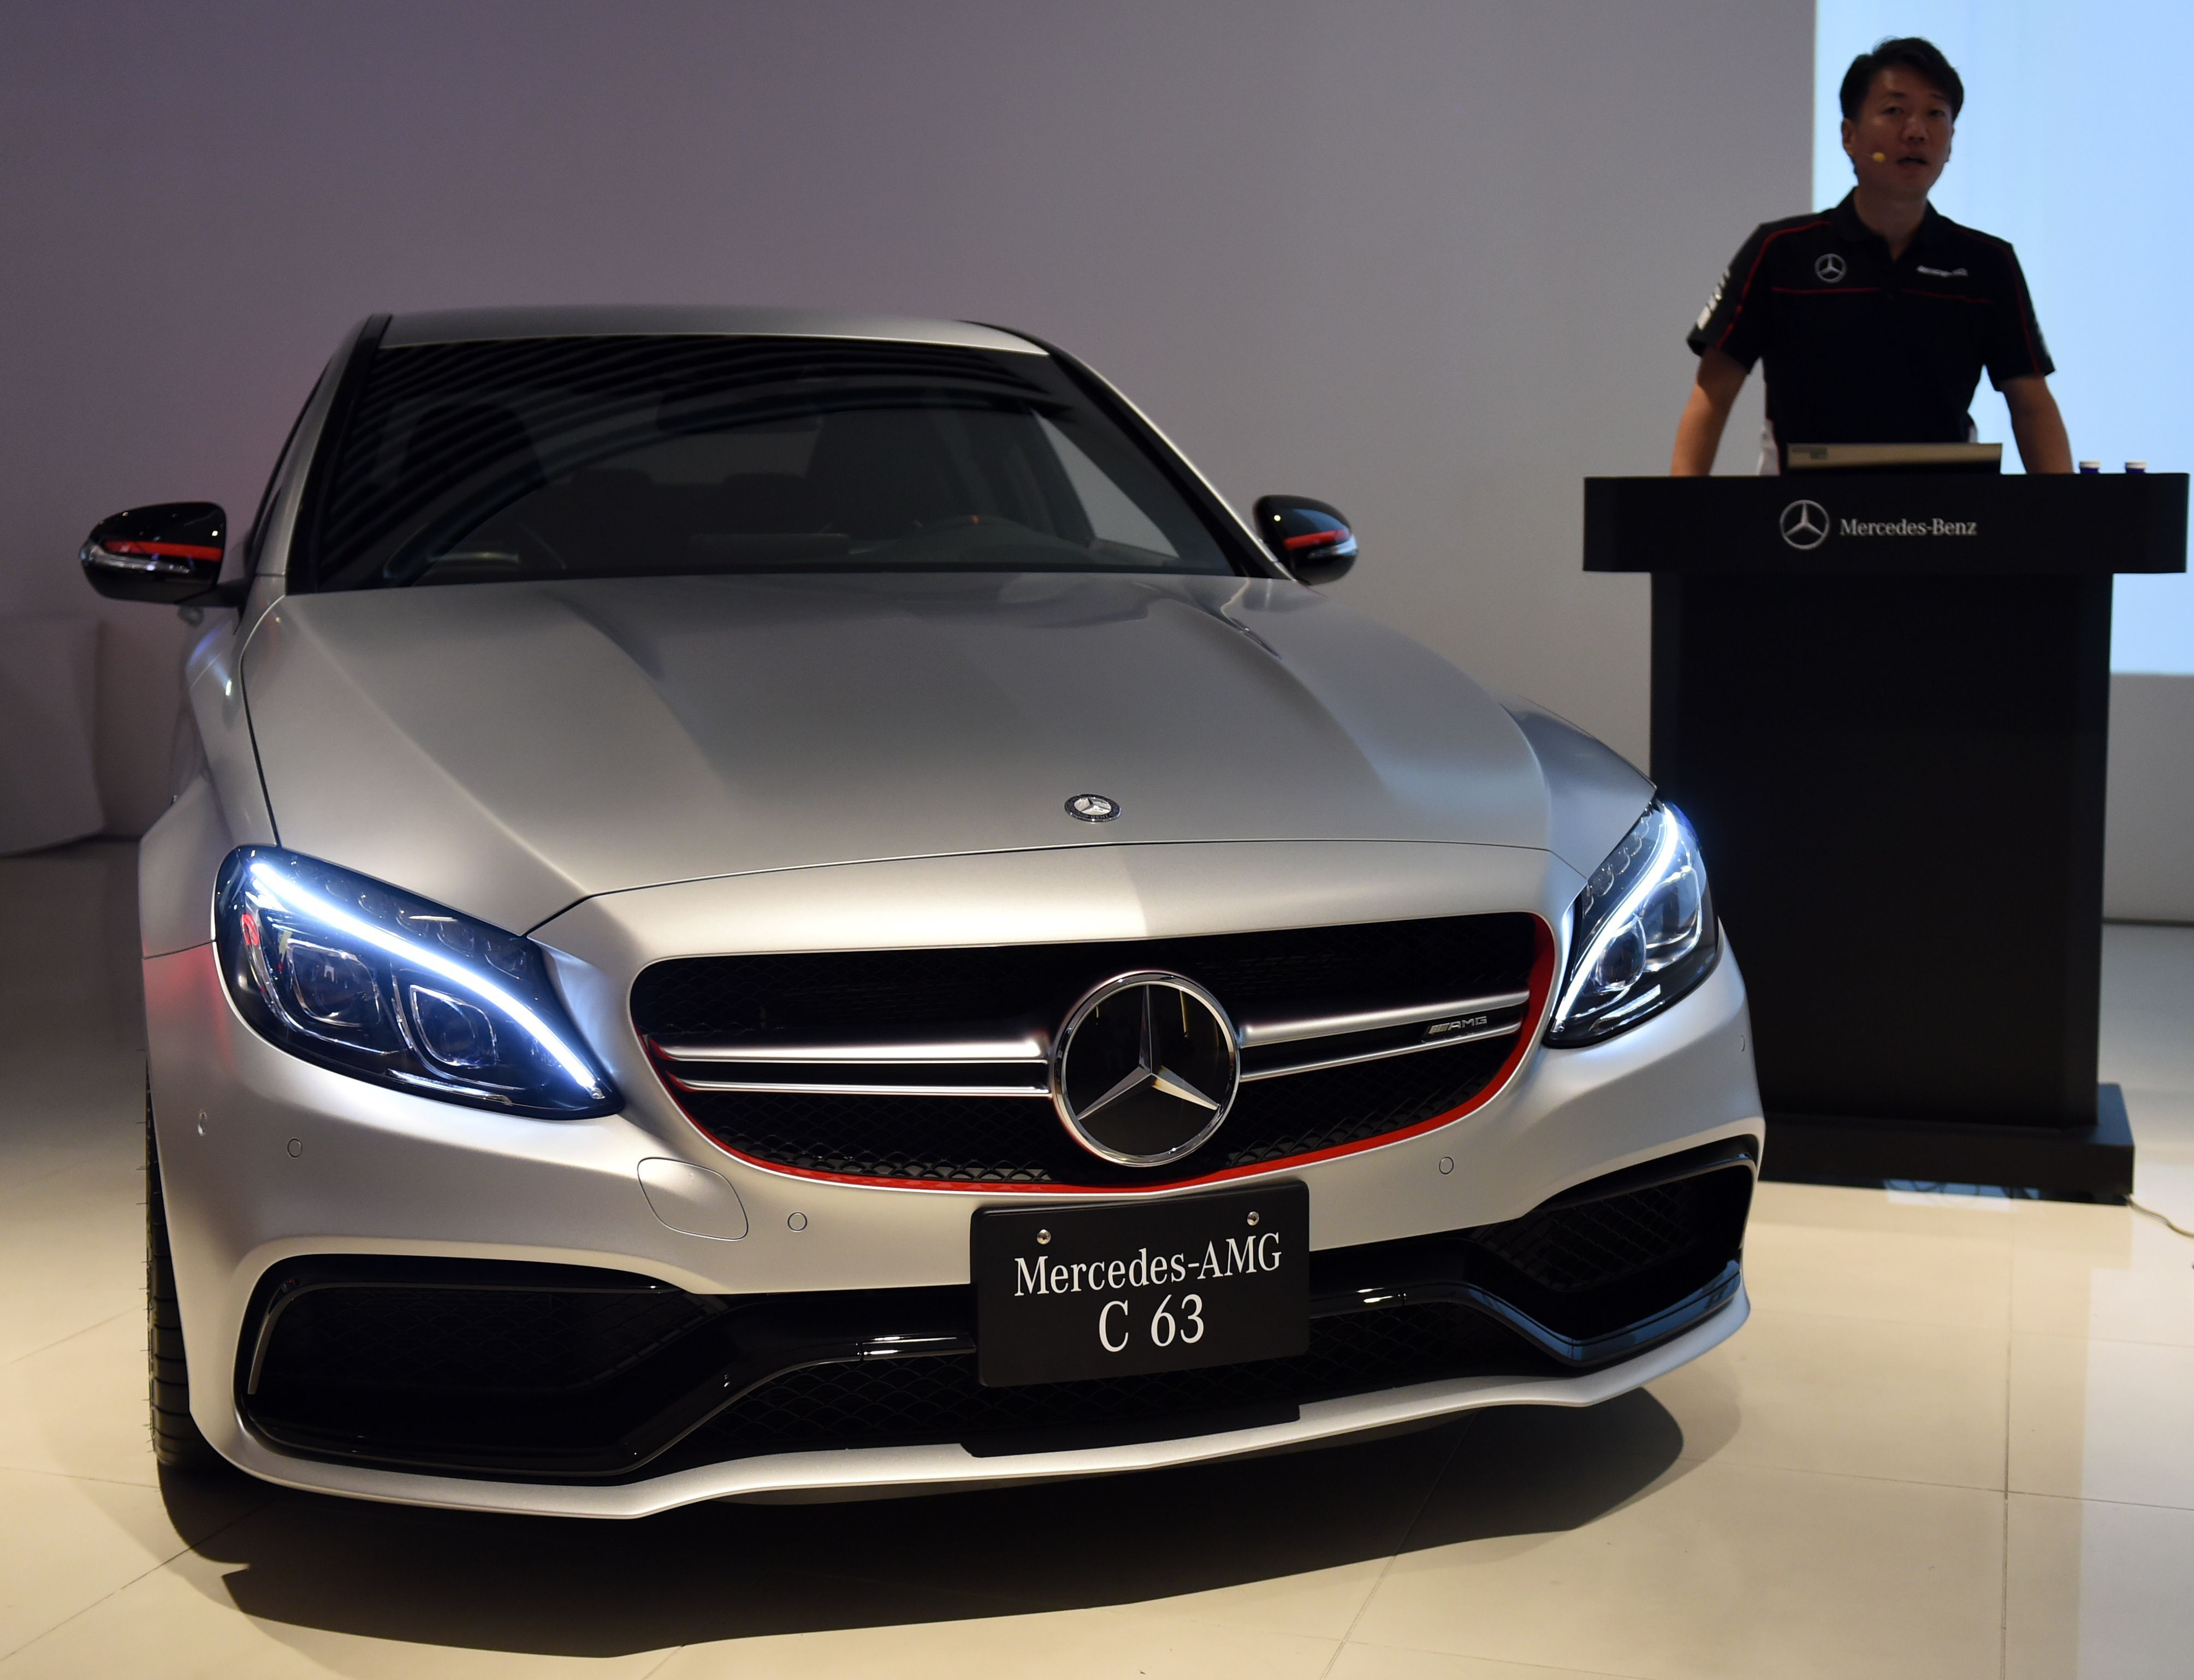 luxury car japan  Surging luxury car demand vaults Mercedes-Benz past Volkswagen in ...